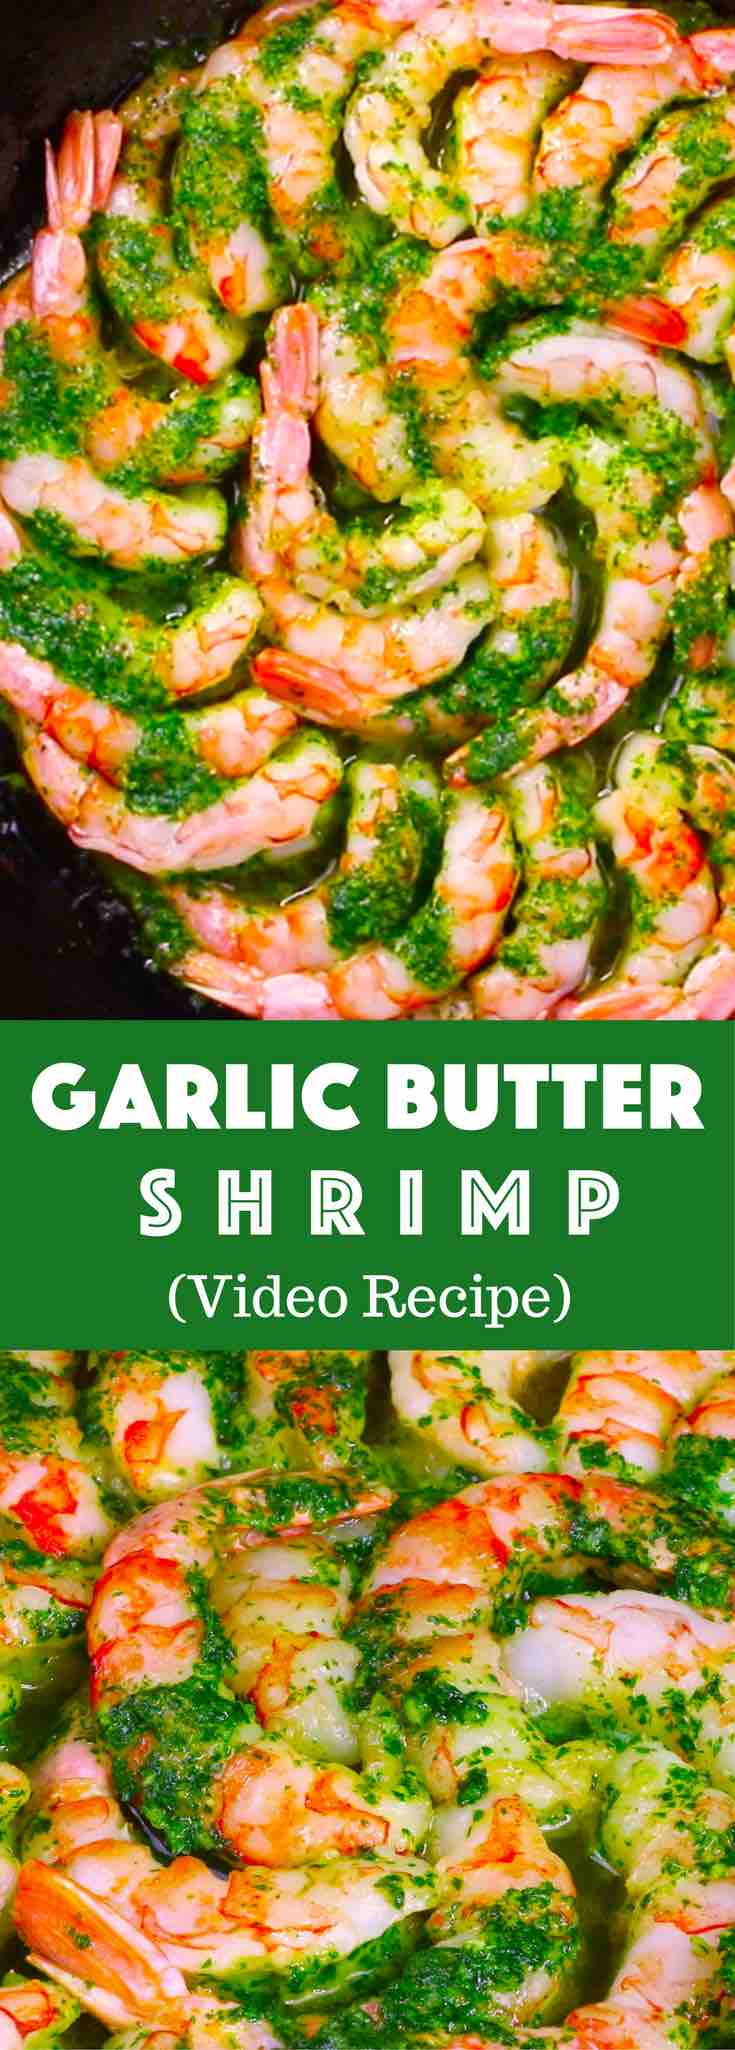 Easy Garlic Butter Shrimp – One of the most unbelievably delicious shrimp recipes. Succulent shrimp baked in garlic and buttery sauce. So Good! Quick and easy dinner recipe. Video recipe.